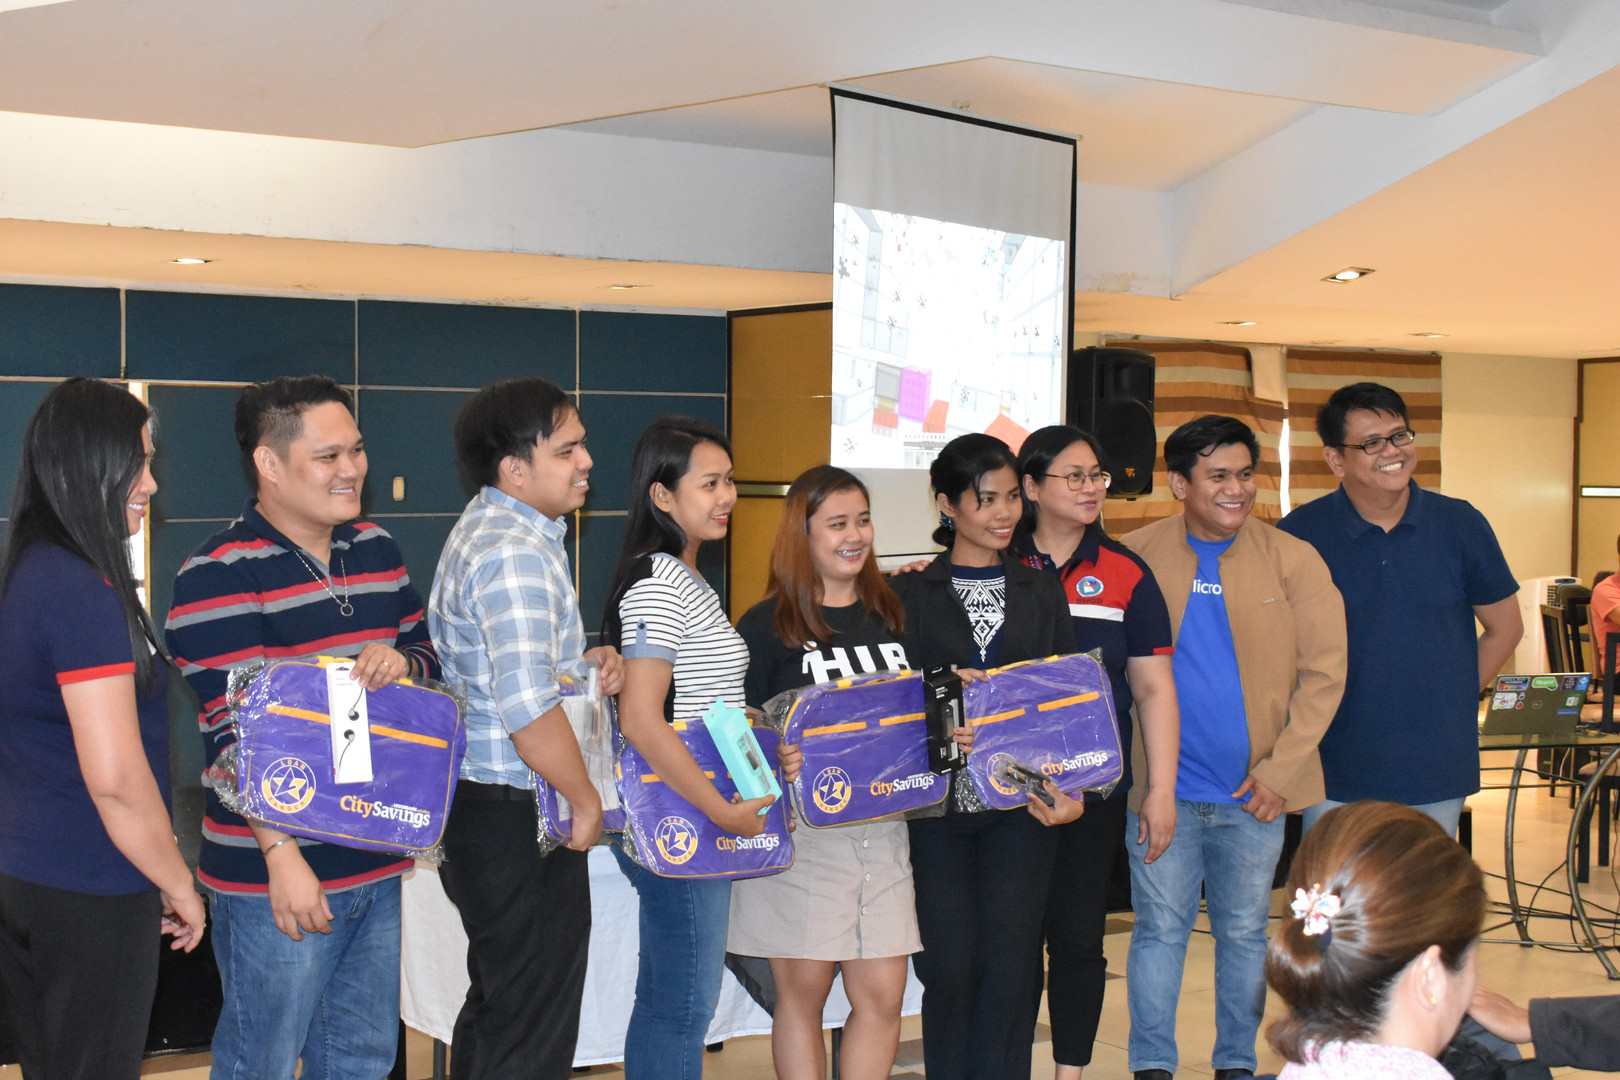 Awarding of Top 5 Partipants who answers the Day 1 Evaluation Form in a quick and comprehensive way